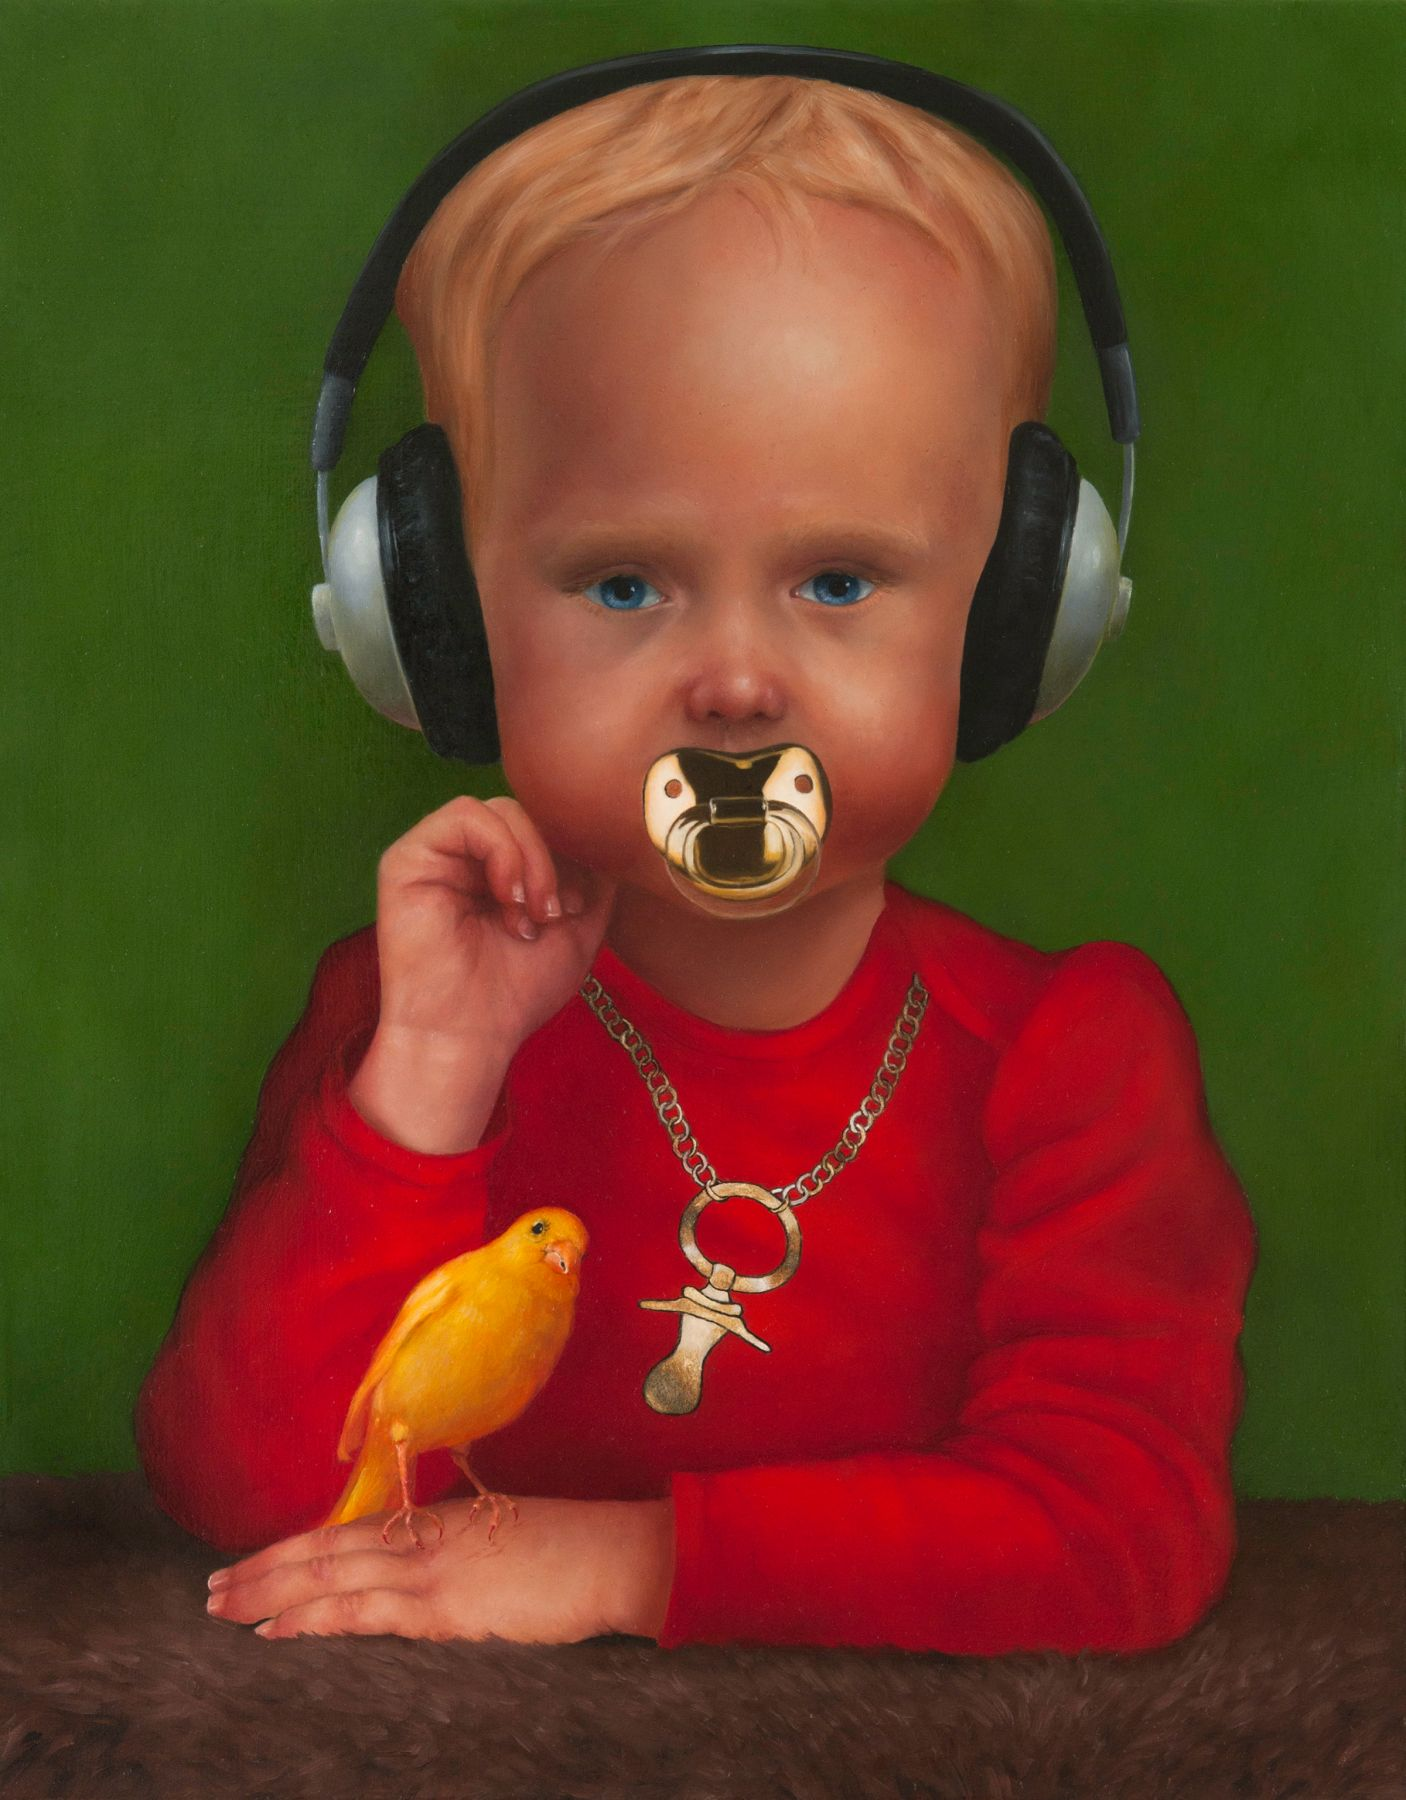 KATIE MILLER_Young Bling Cole with a Merry Canary_The Fancy of Babes_Is Realism Relevant?